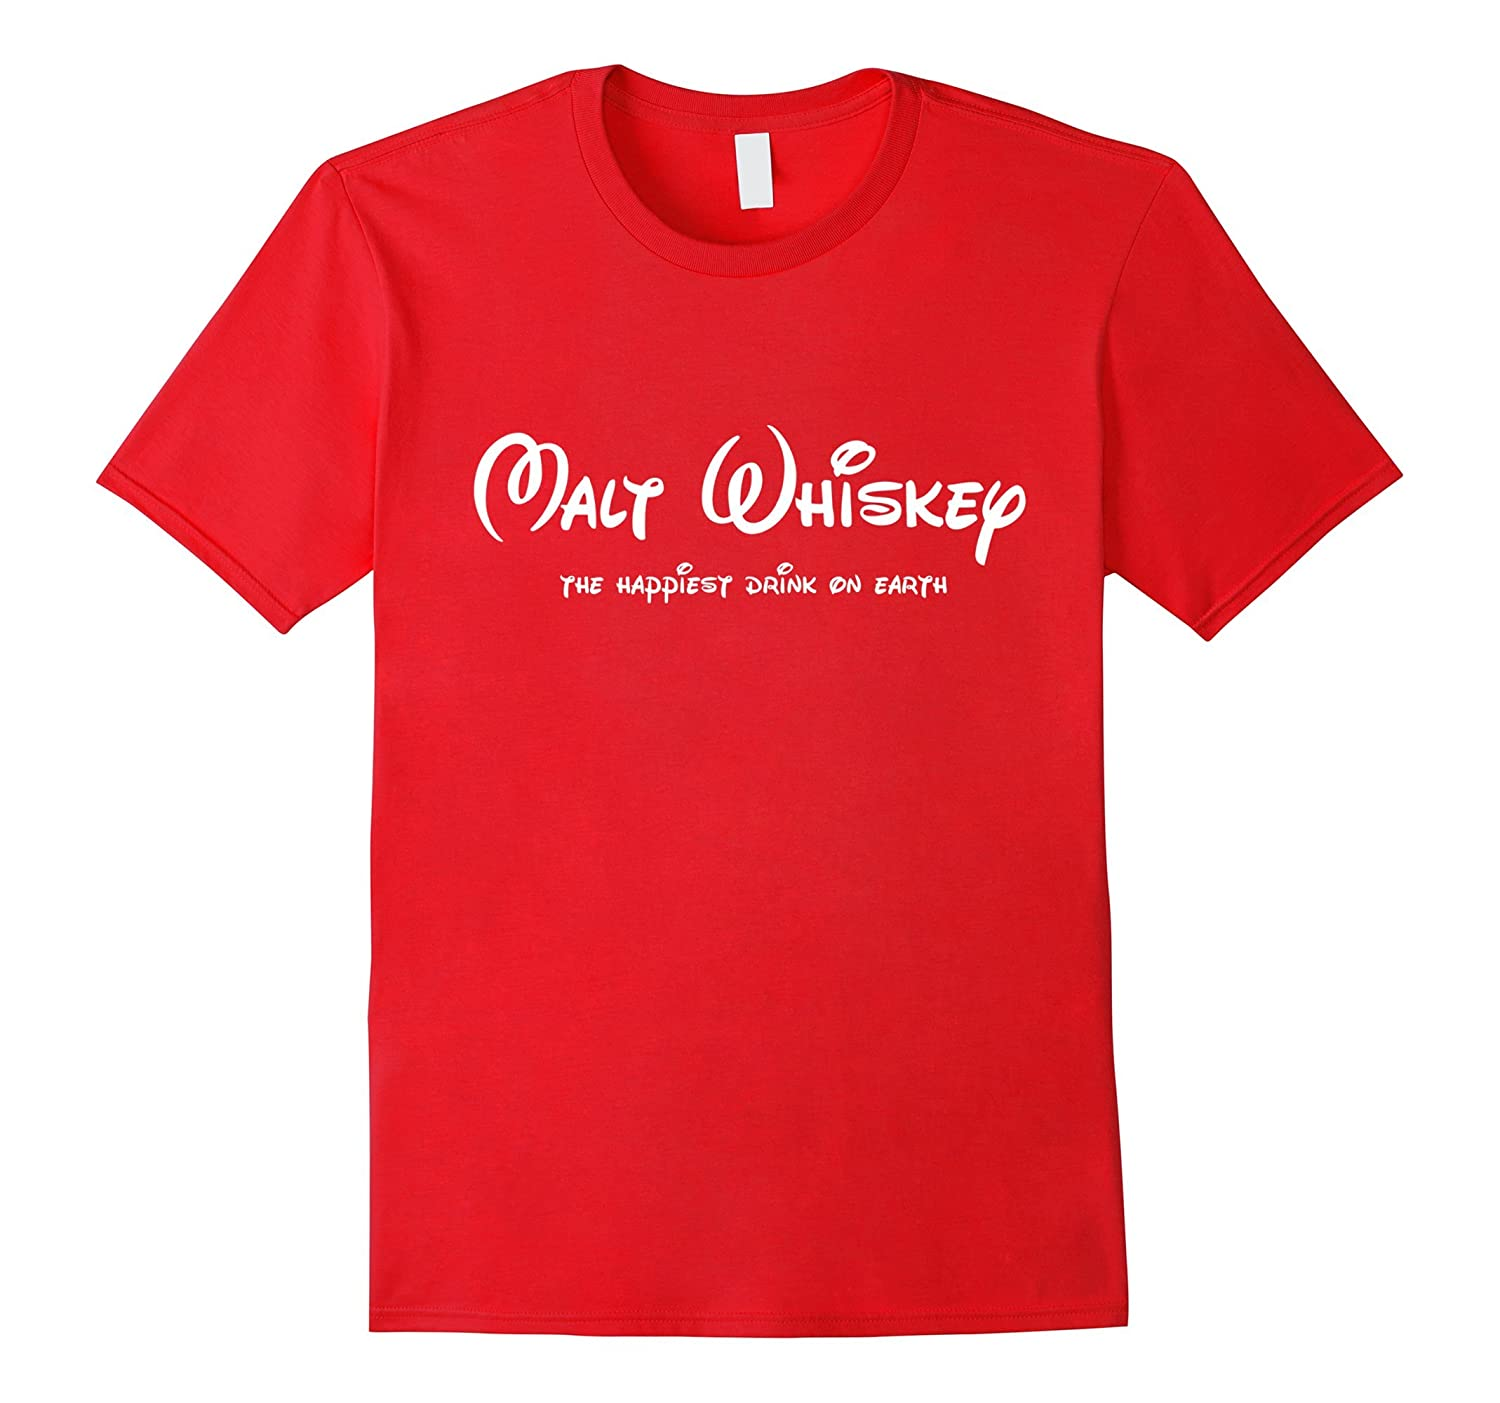 AW Fashions Malt Whiskey The Happiest Drink On Earth T-shirt-CL